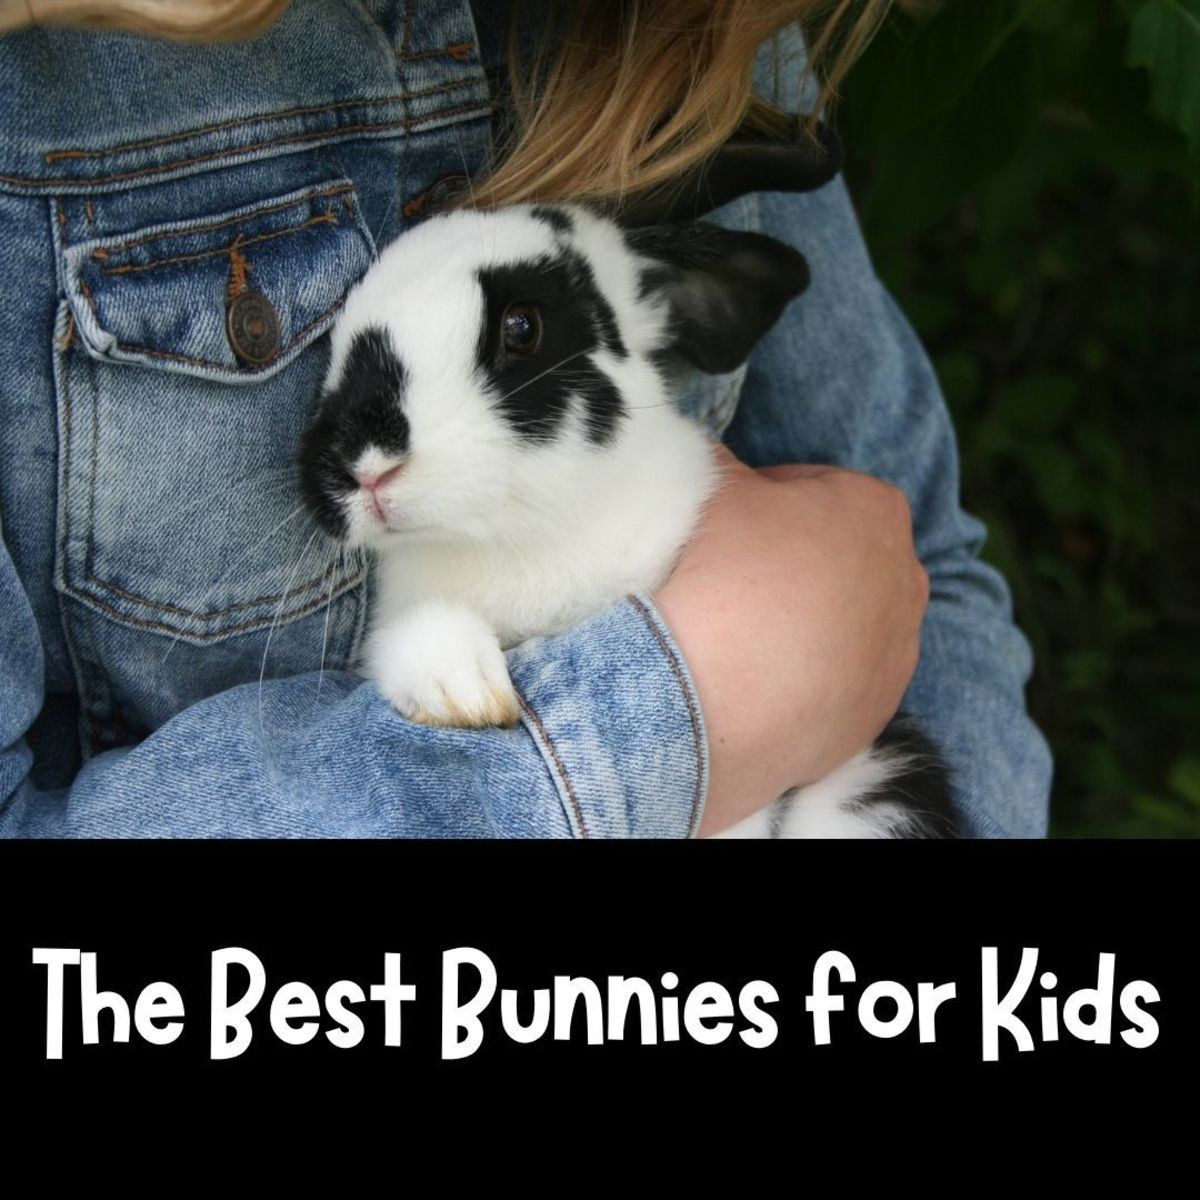 What Are the Best Bunnies for Children?